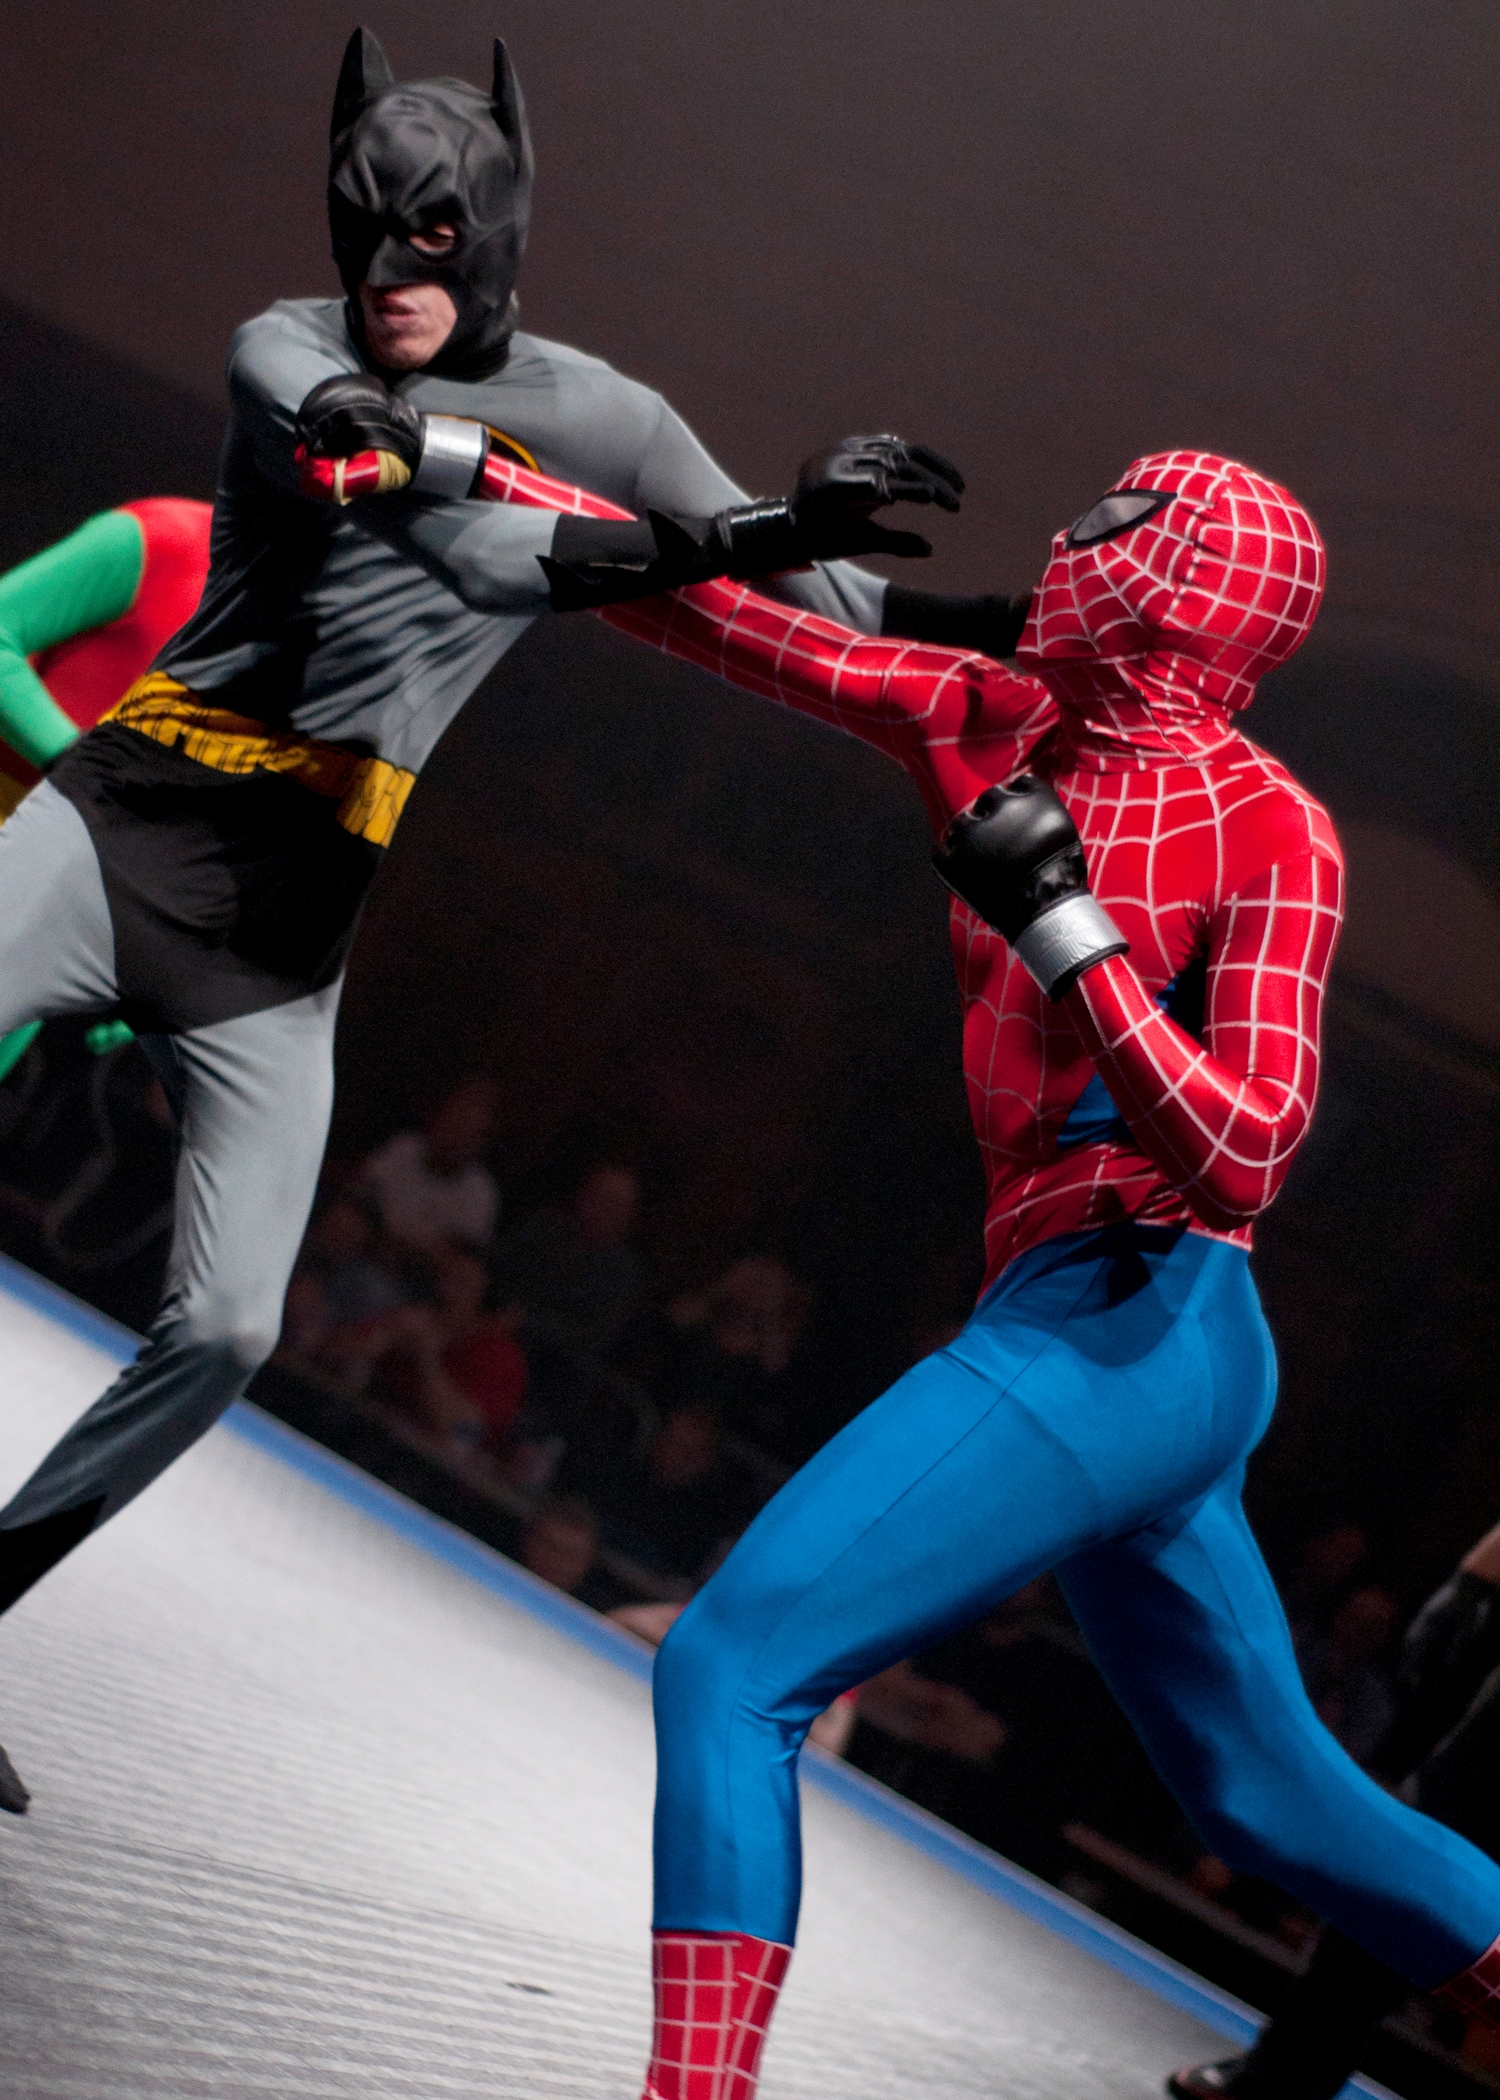 VIDEO: Bizarre fight between Spiderman and Batman in Southampton